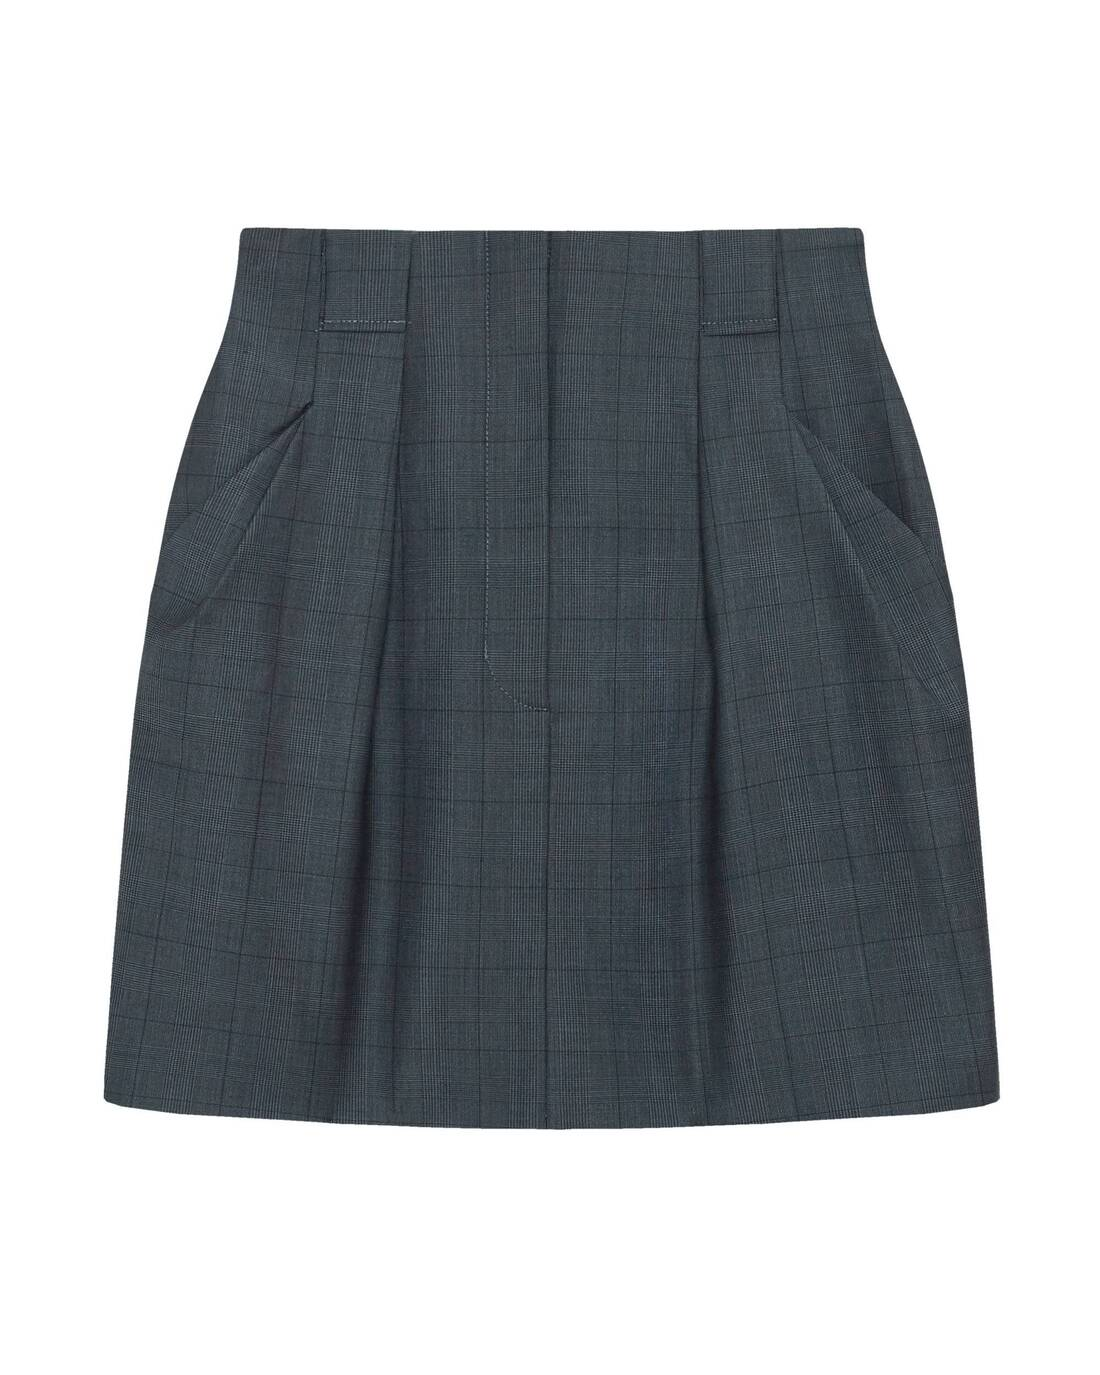 Tucked mini-skirt